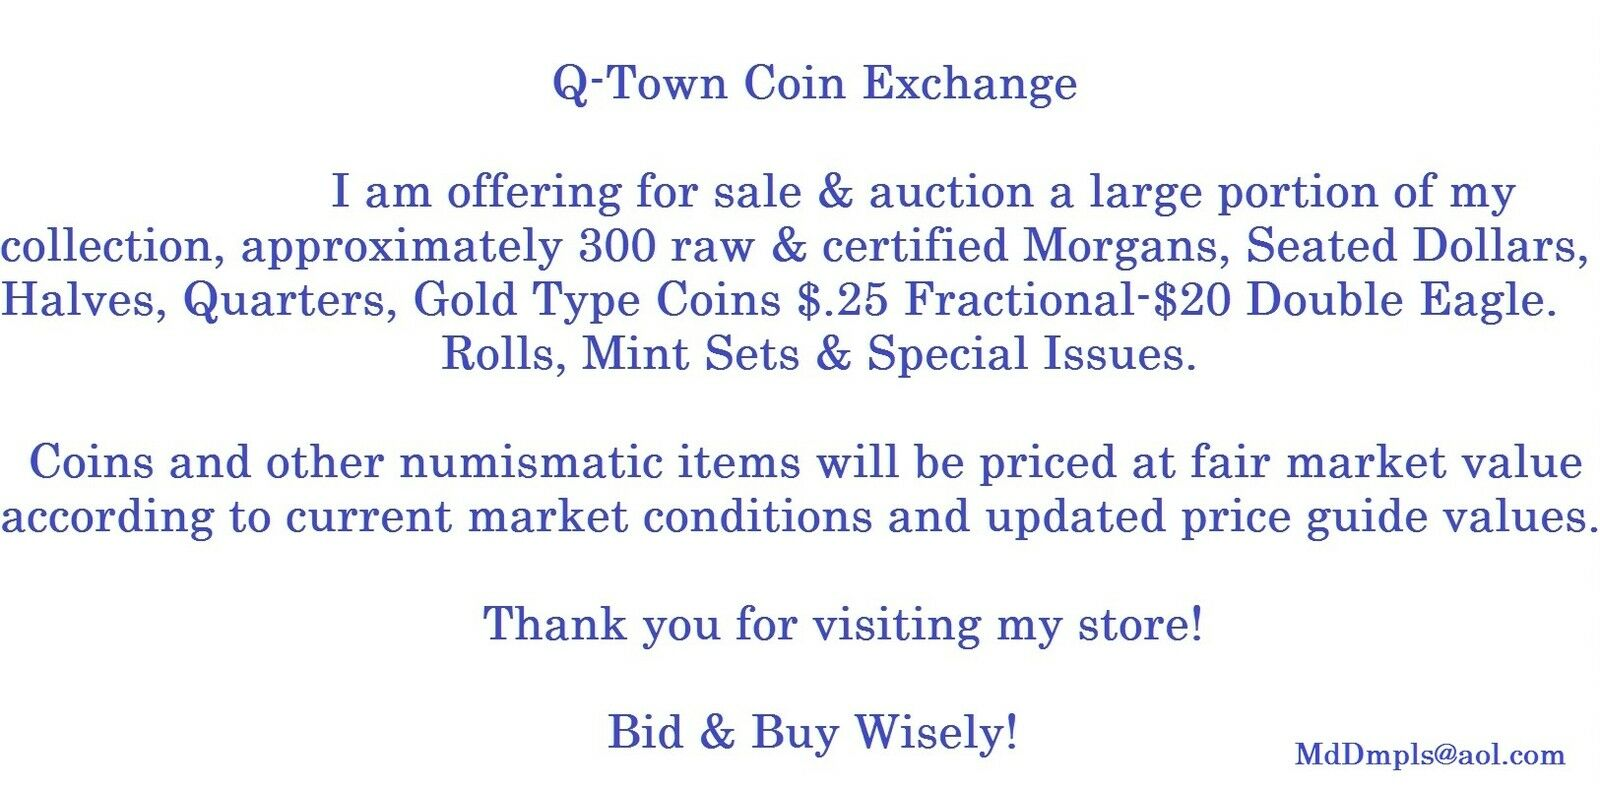 Q-Town coin exchange